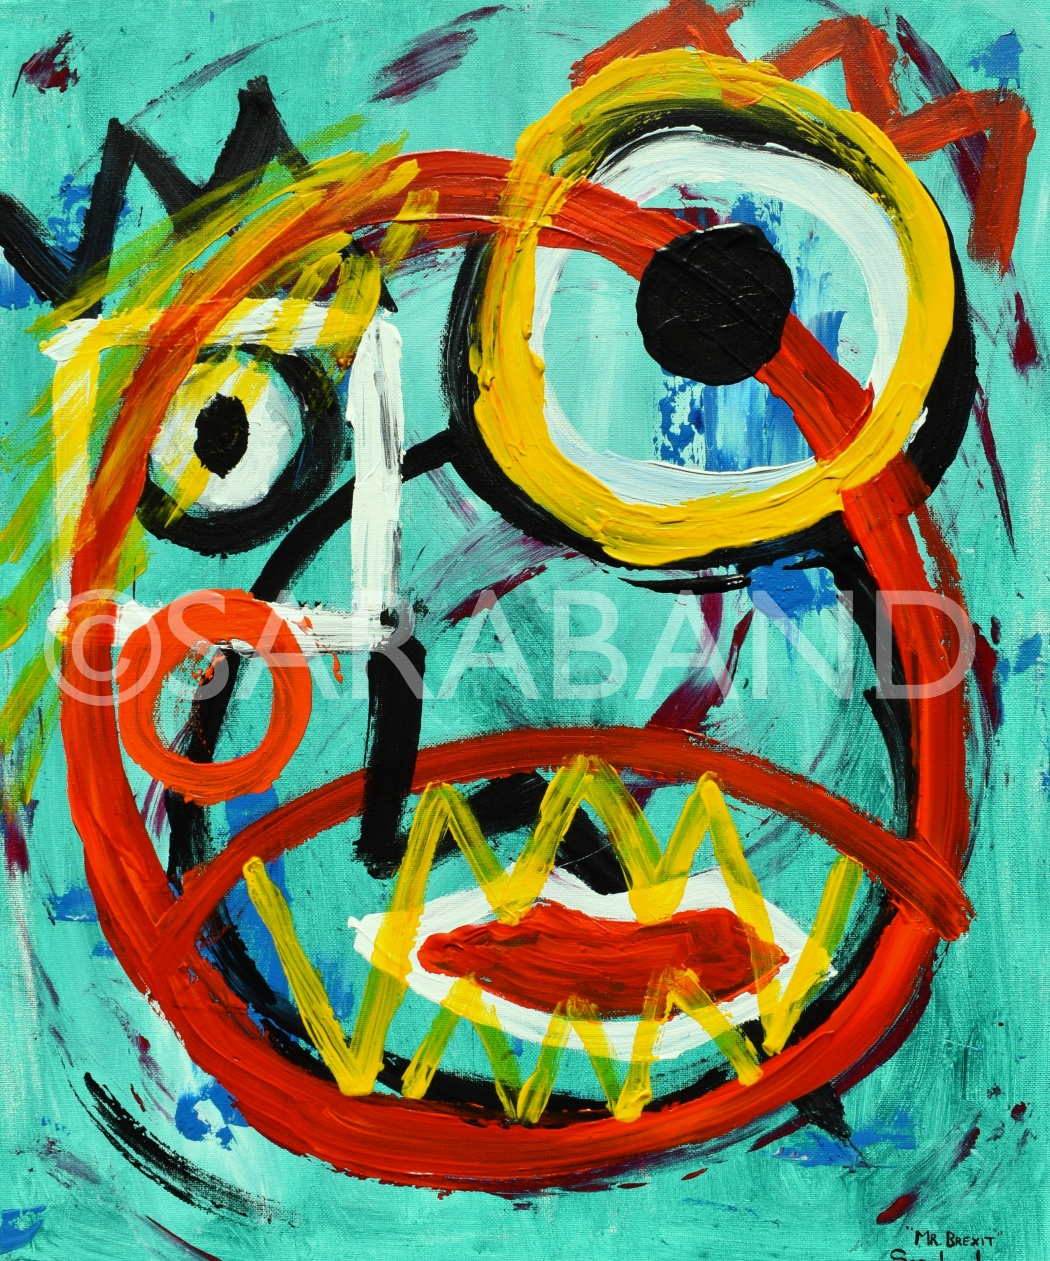 """MR BREXIT"" - 60x50cm, acrylic on canvas - £390"